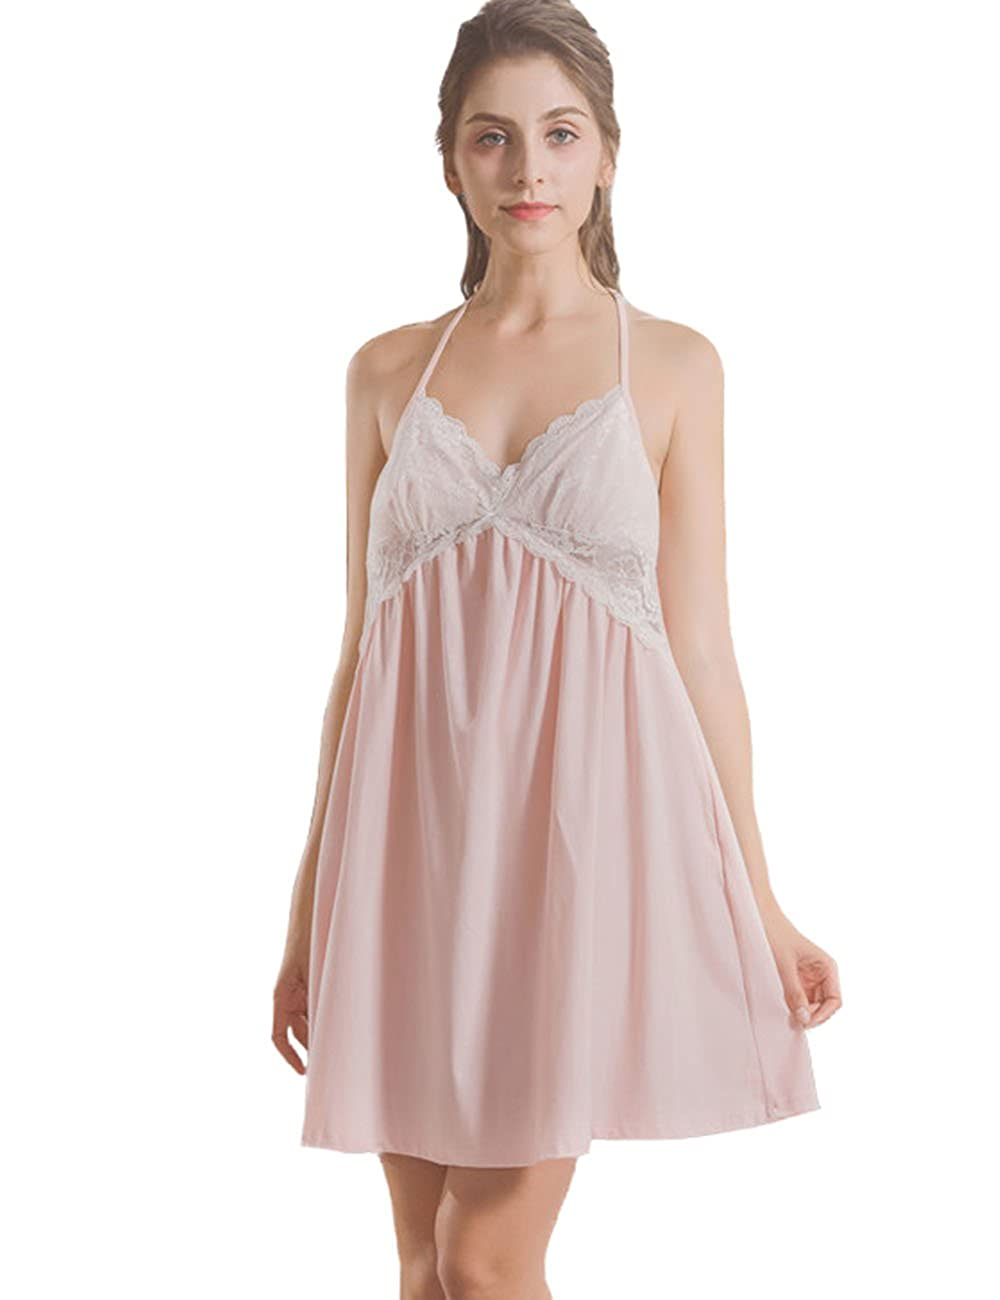 a0dc2356de AIKOSHA Womens Princess Style Halter V-Neck T Back Lace Trim Short Swing Pink  White Cotton Nightgown at Amazon Women s Clothing store